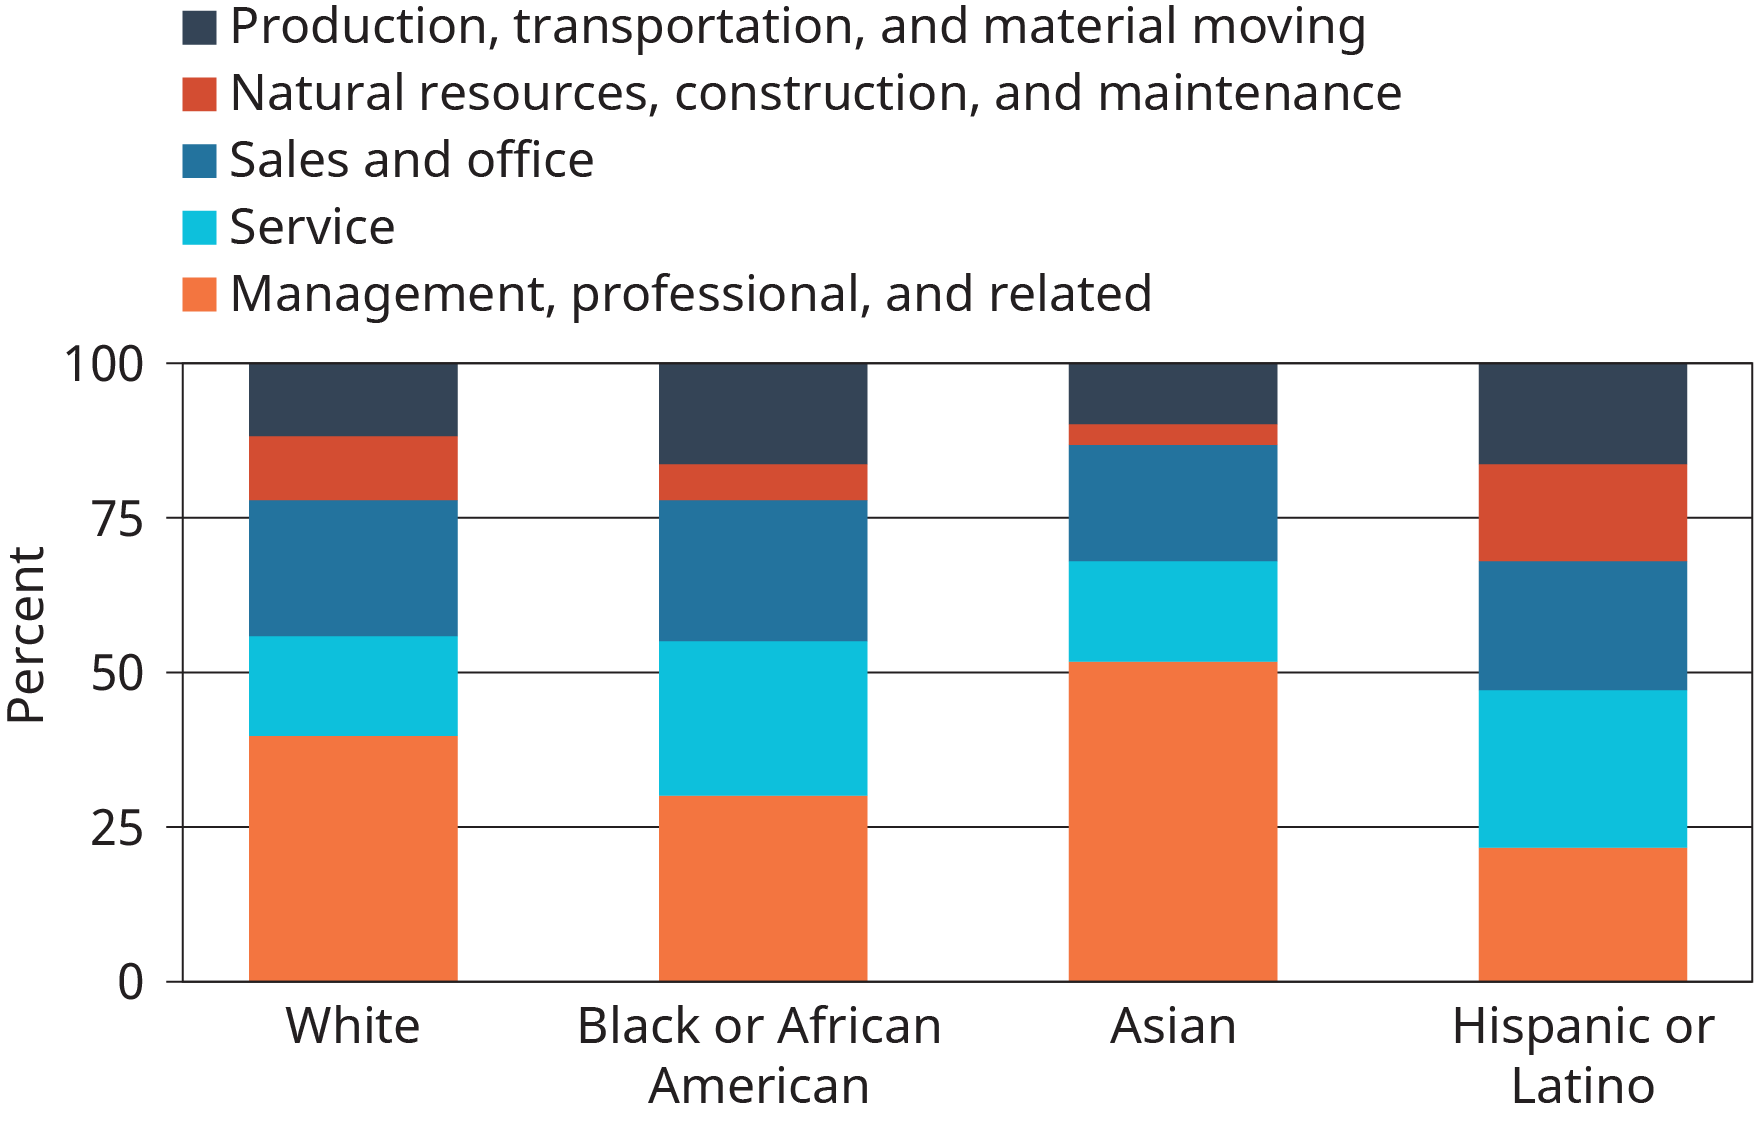 A stacked vertical bar graph plots the percentage of people employed in different sectors belonging to different ethnic groups.